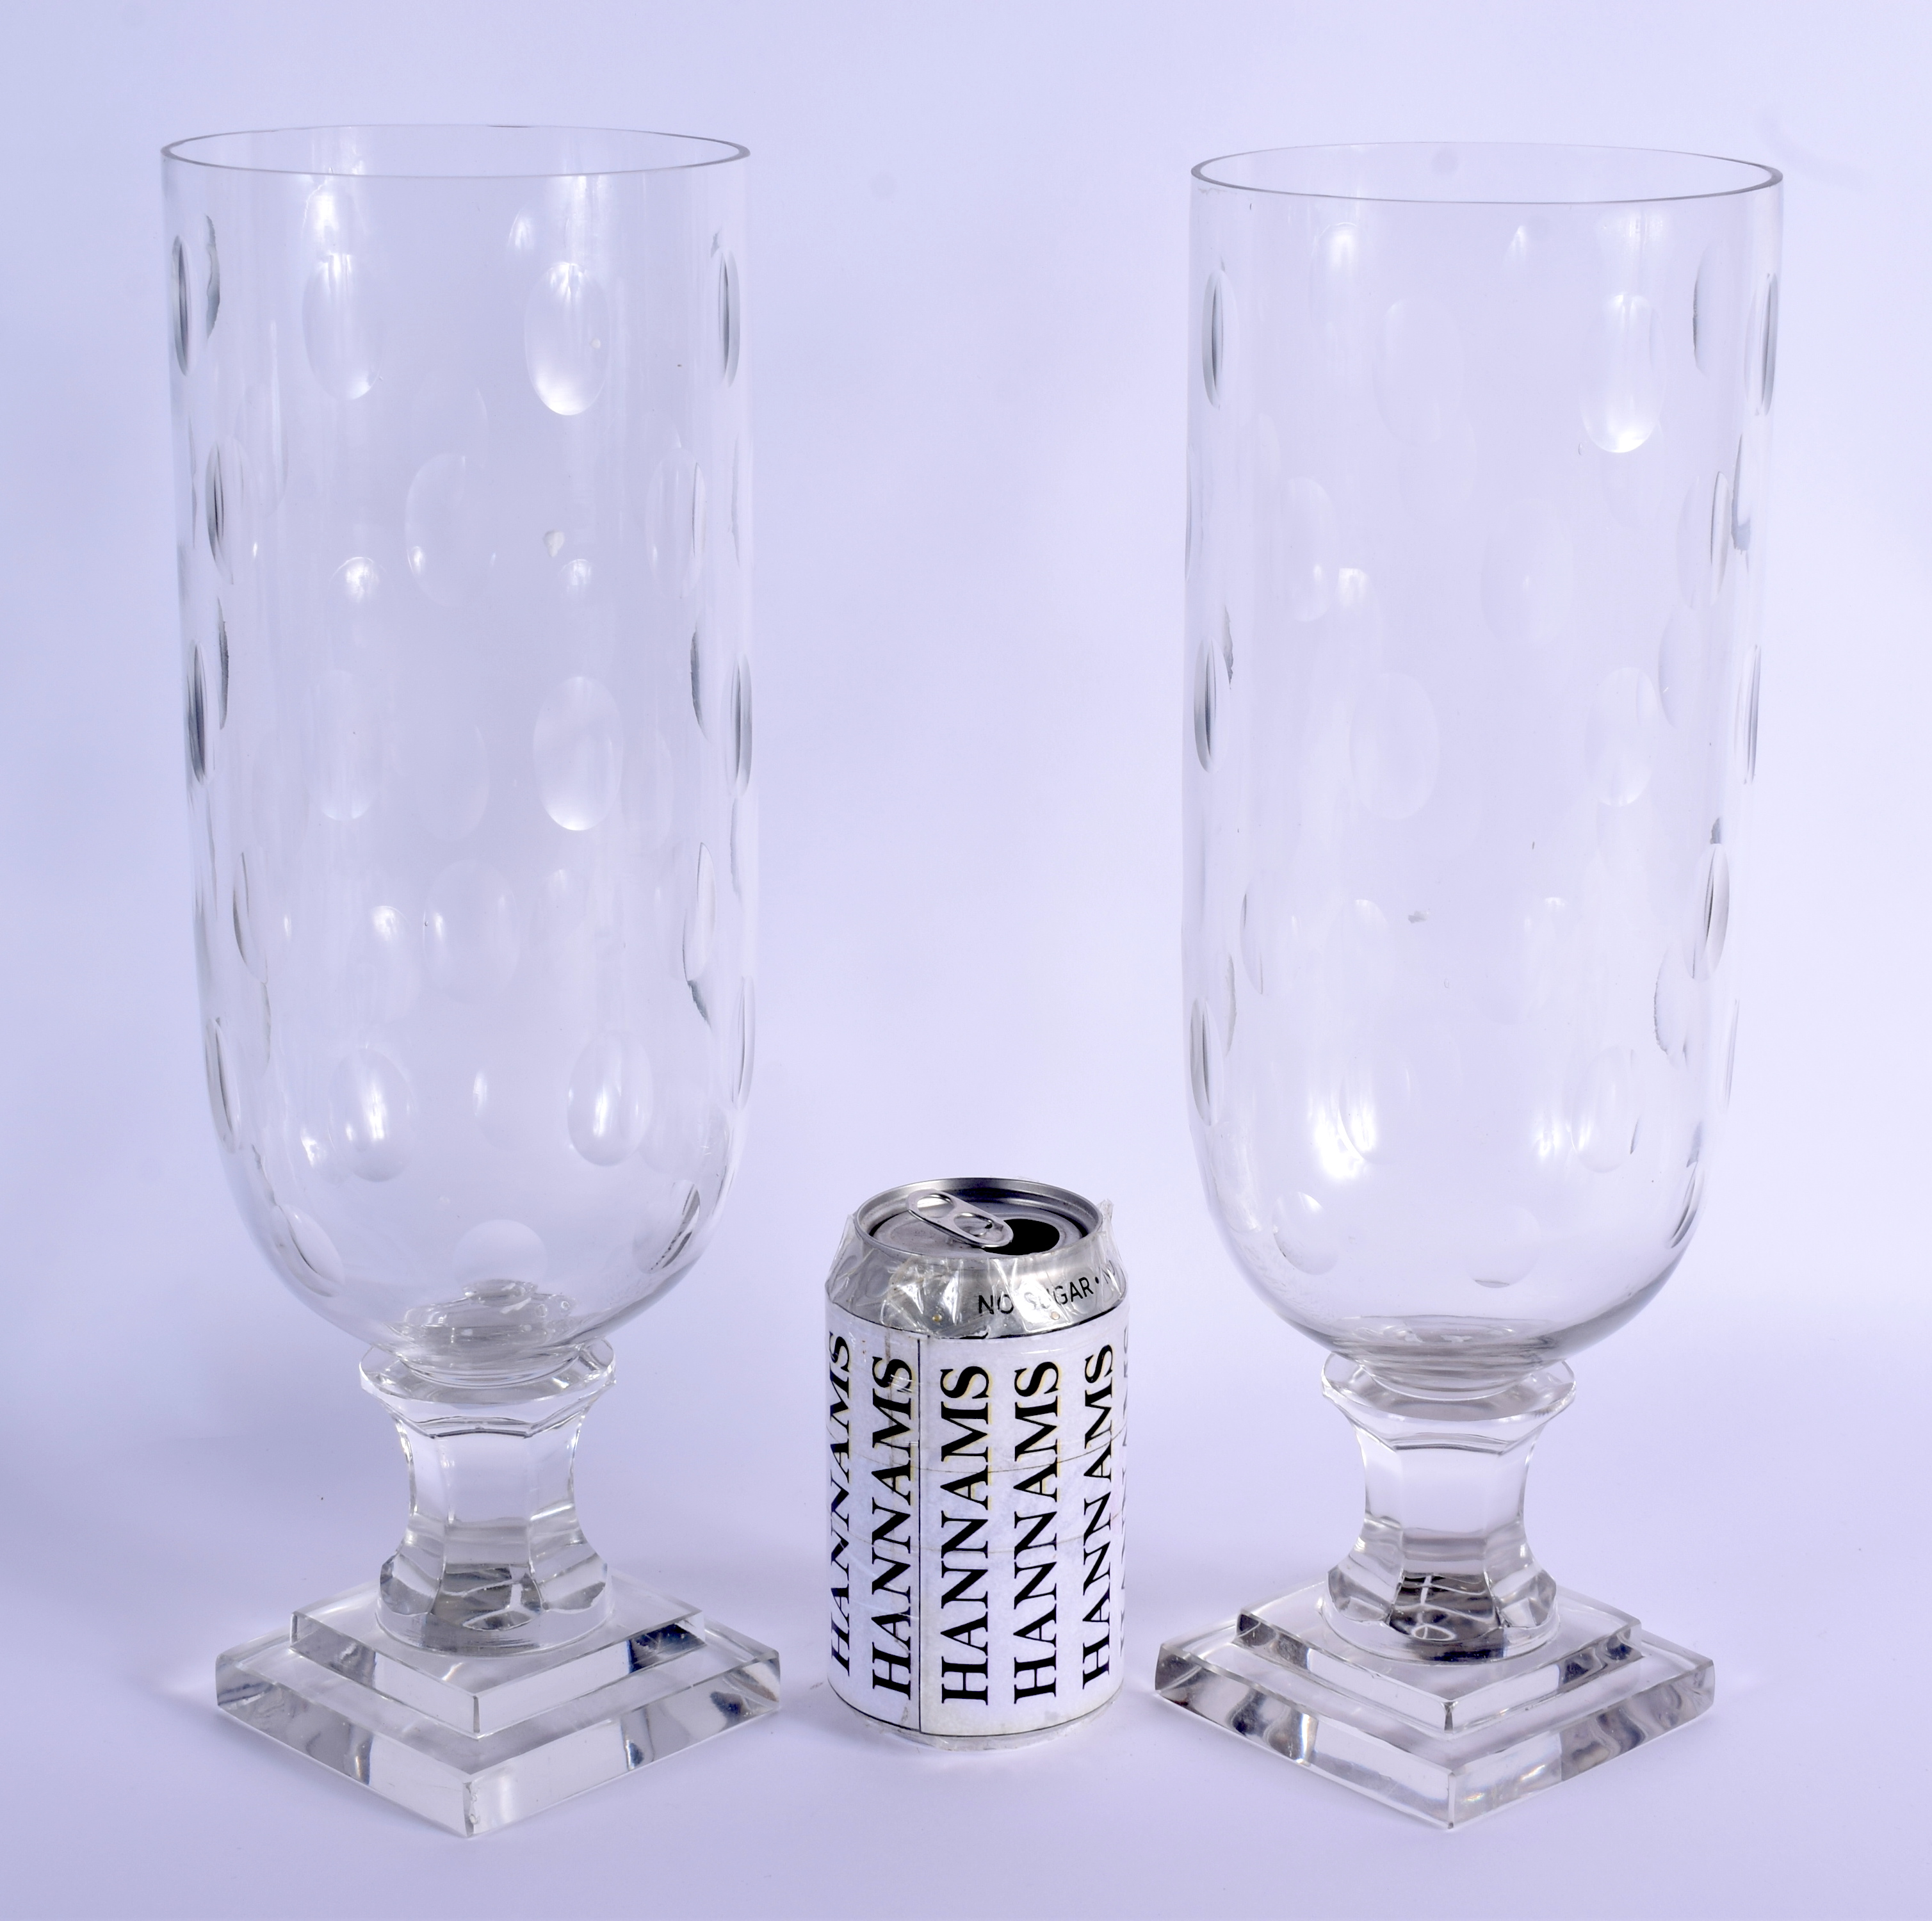 A PAIR OF EUROPEAN CELERY STORM STYLE GLASS VASES. 34 cm high.